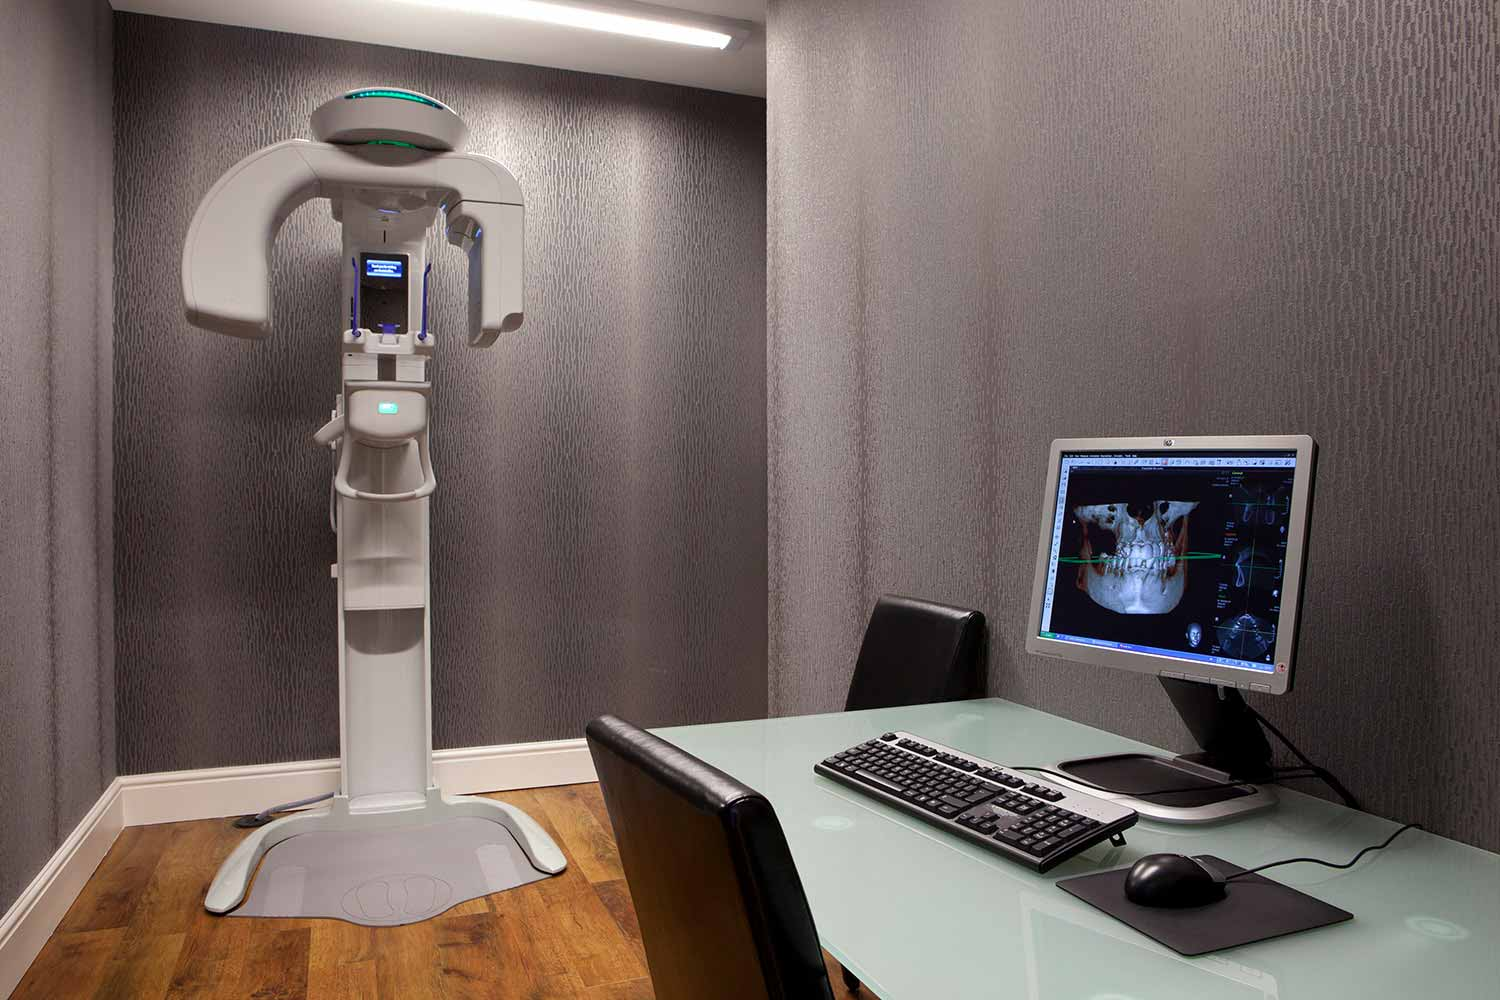 The Implant Centre, Hove - X-Ray Room